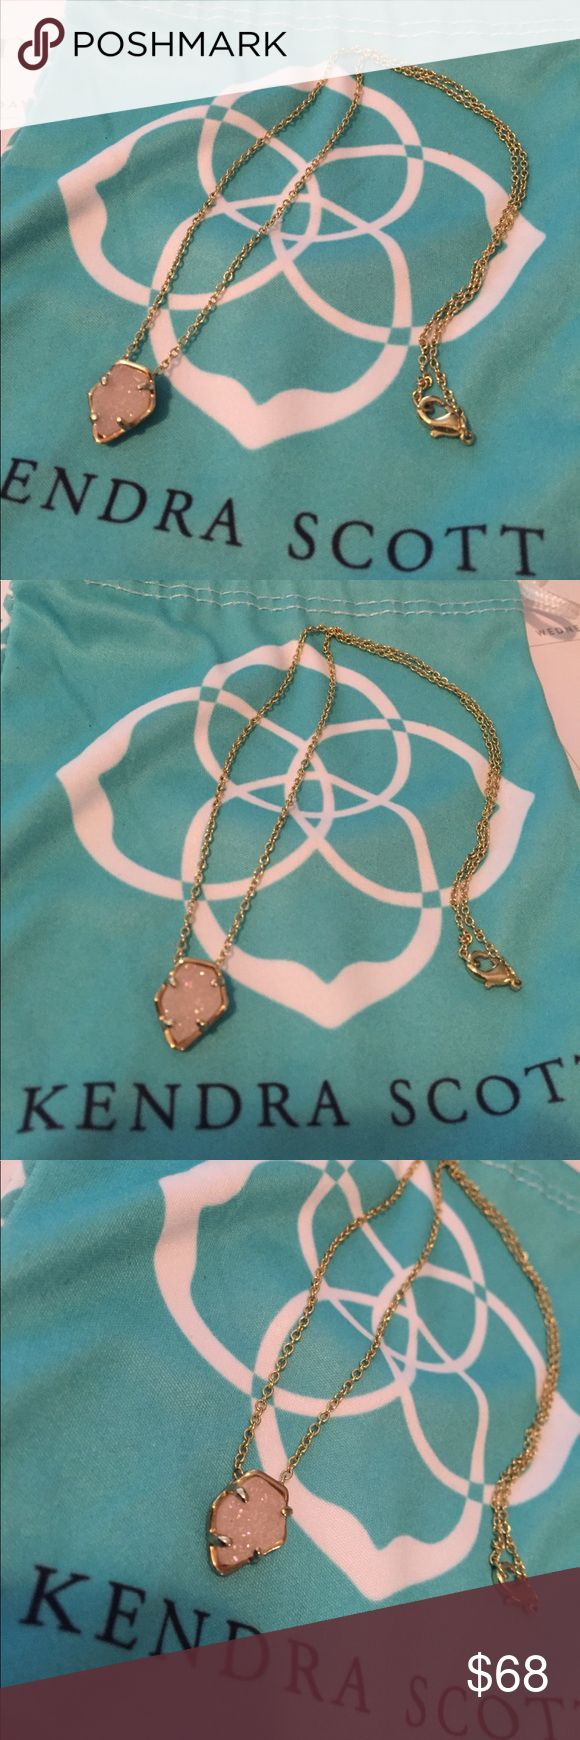 Kendra Scott Necklace Gold with sparkly Druzy! Excellent condition. Comes with dust bag. Kendra Scott Jewelry Necklaces